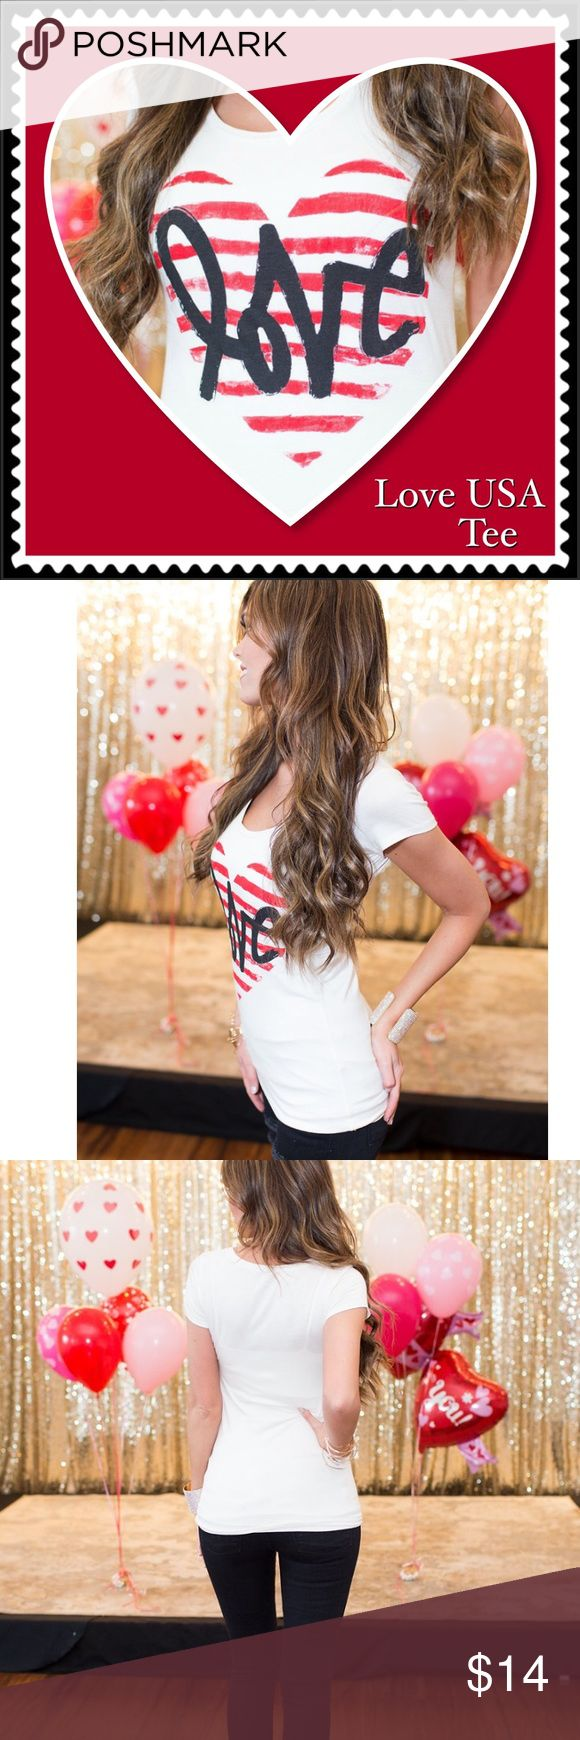 """Captivating Me Tee in Ivory/Red Red striped heart with dark blue word, """"love"""" written across the heart. Large size tee is not lined so you may want a camisole underneath. Have a relaxed, dress down day in this tee and pair of your favorite jeans. Material 95% Rayon, 5% Spandex. Approx 18"""" in length, Bust approx 34"""", Sleeves 1.5"""", Machine wash cold ColorBear Tops Tees - Short Sleeve"""